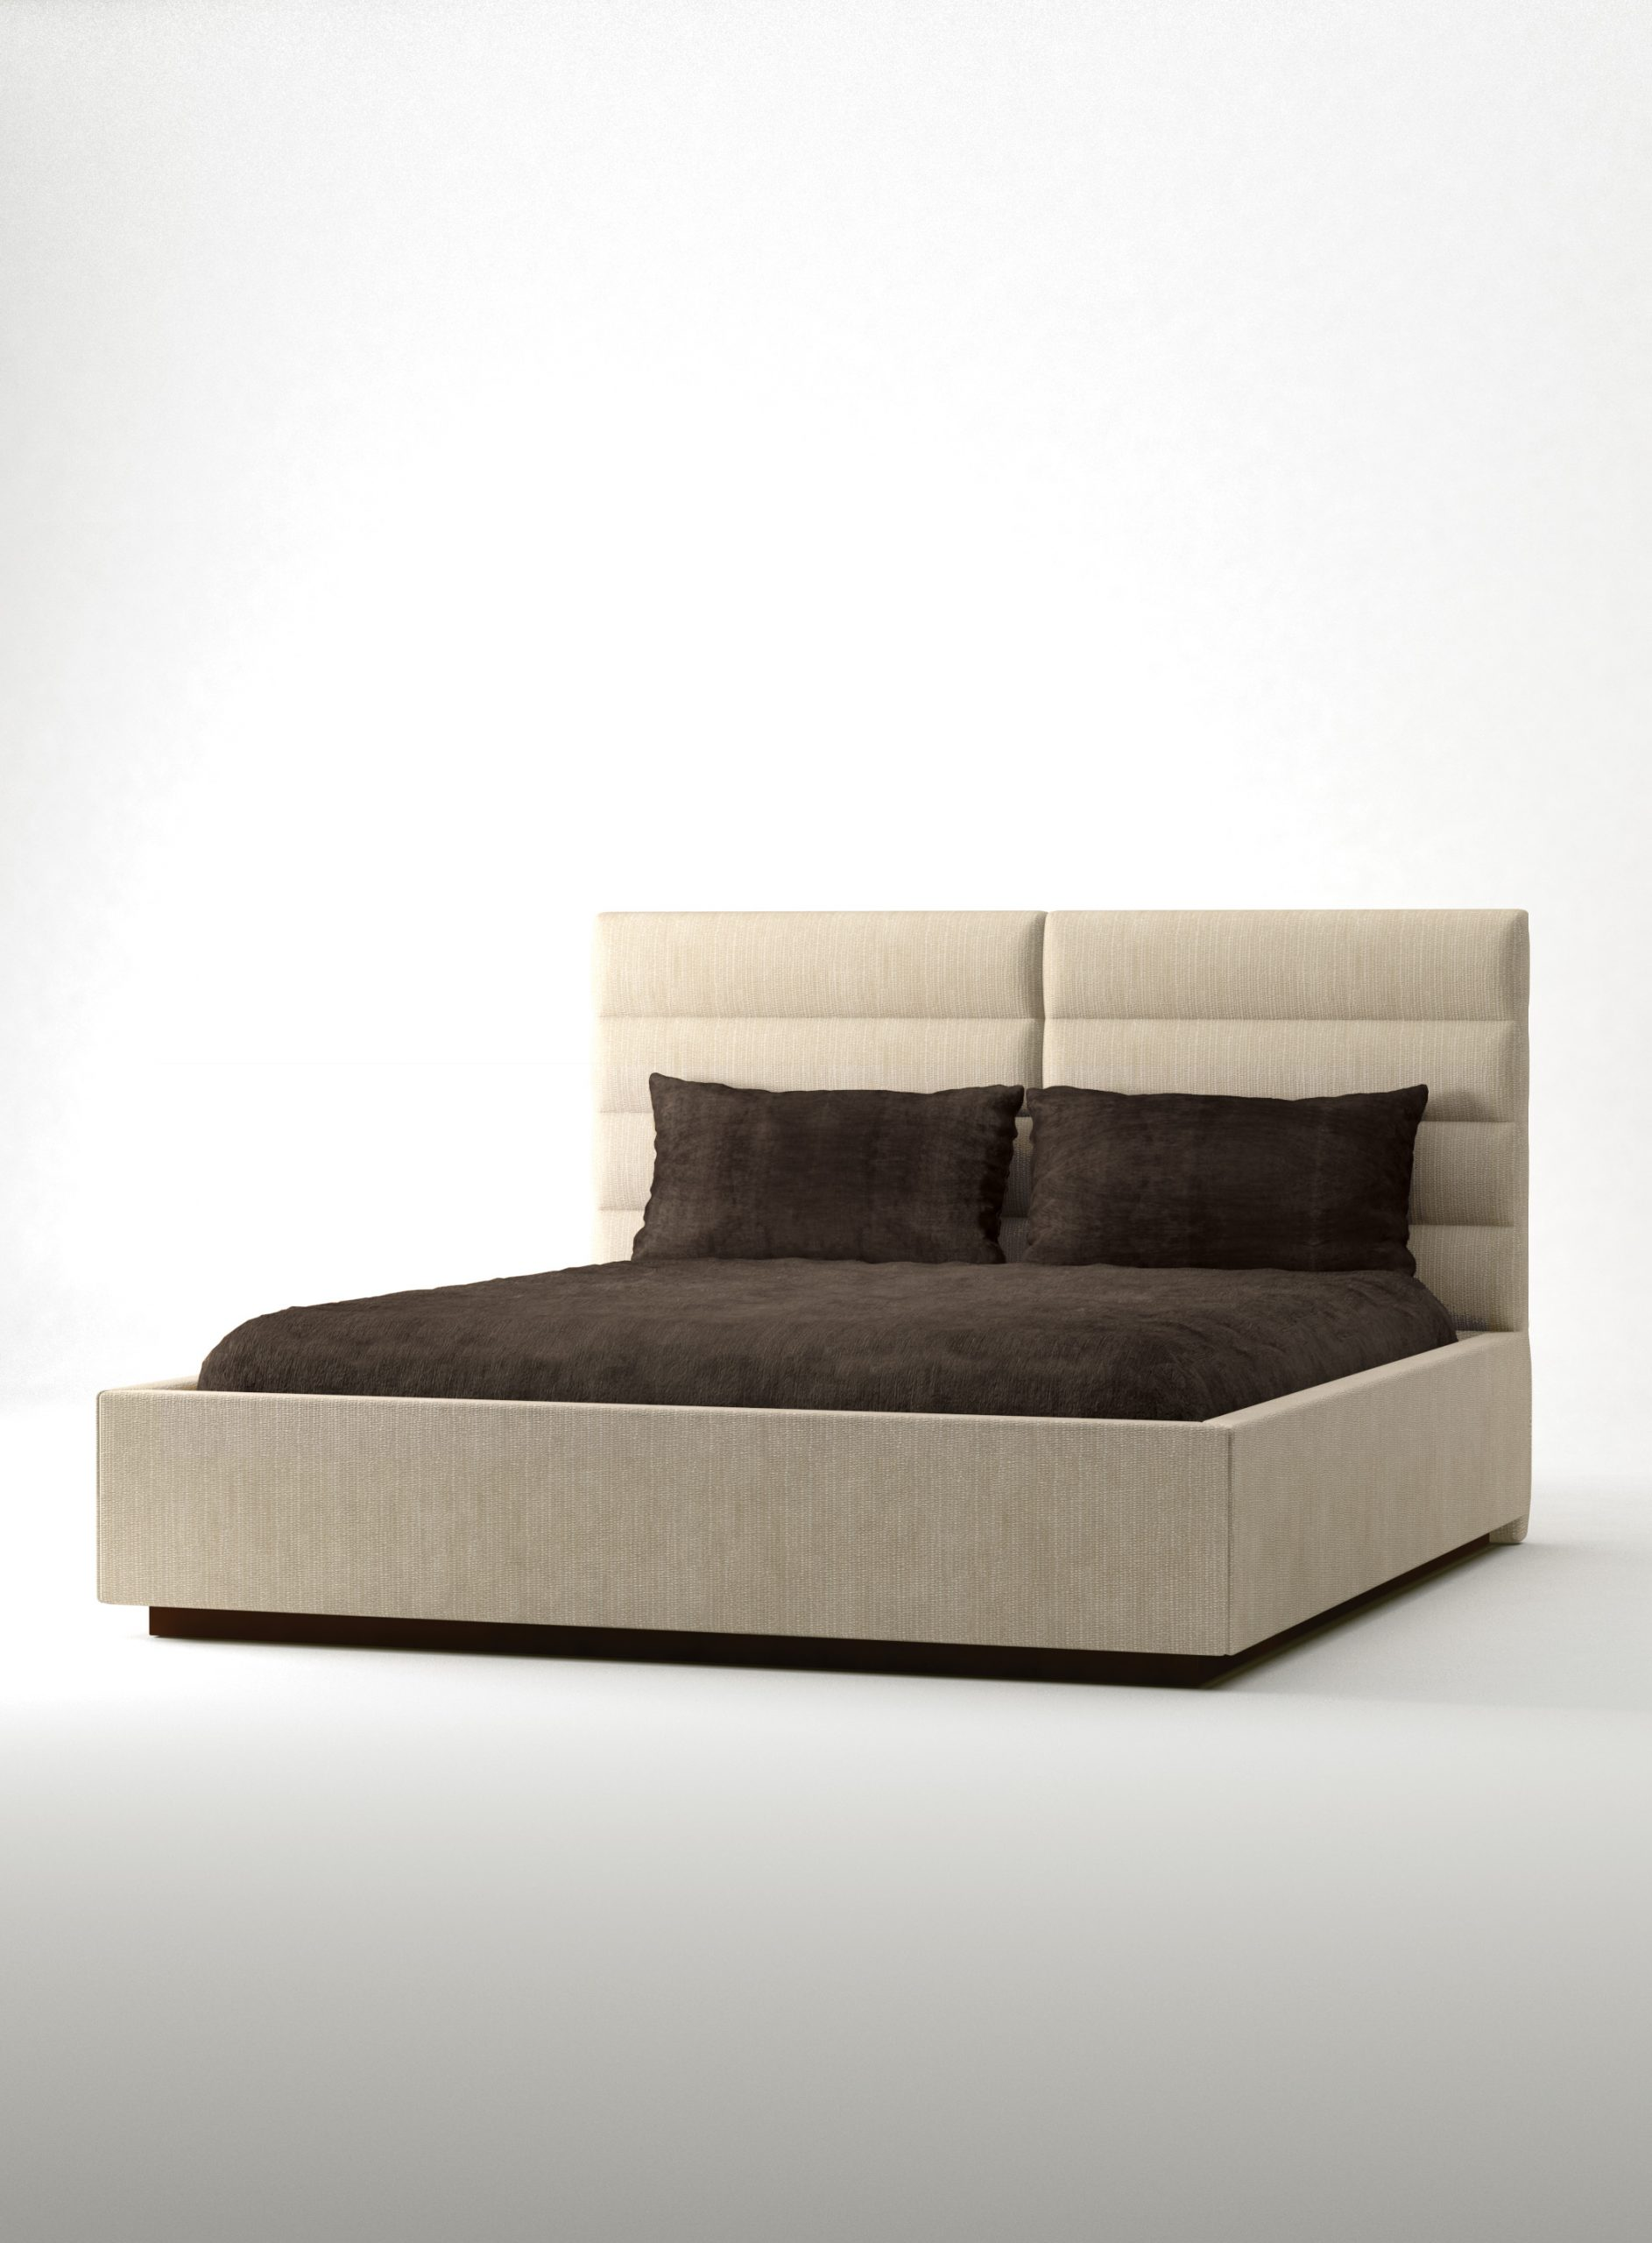 ComfortBed_1